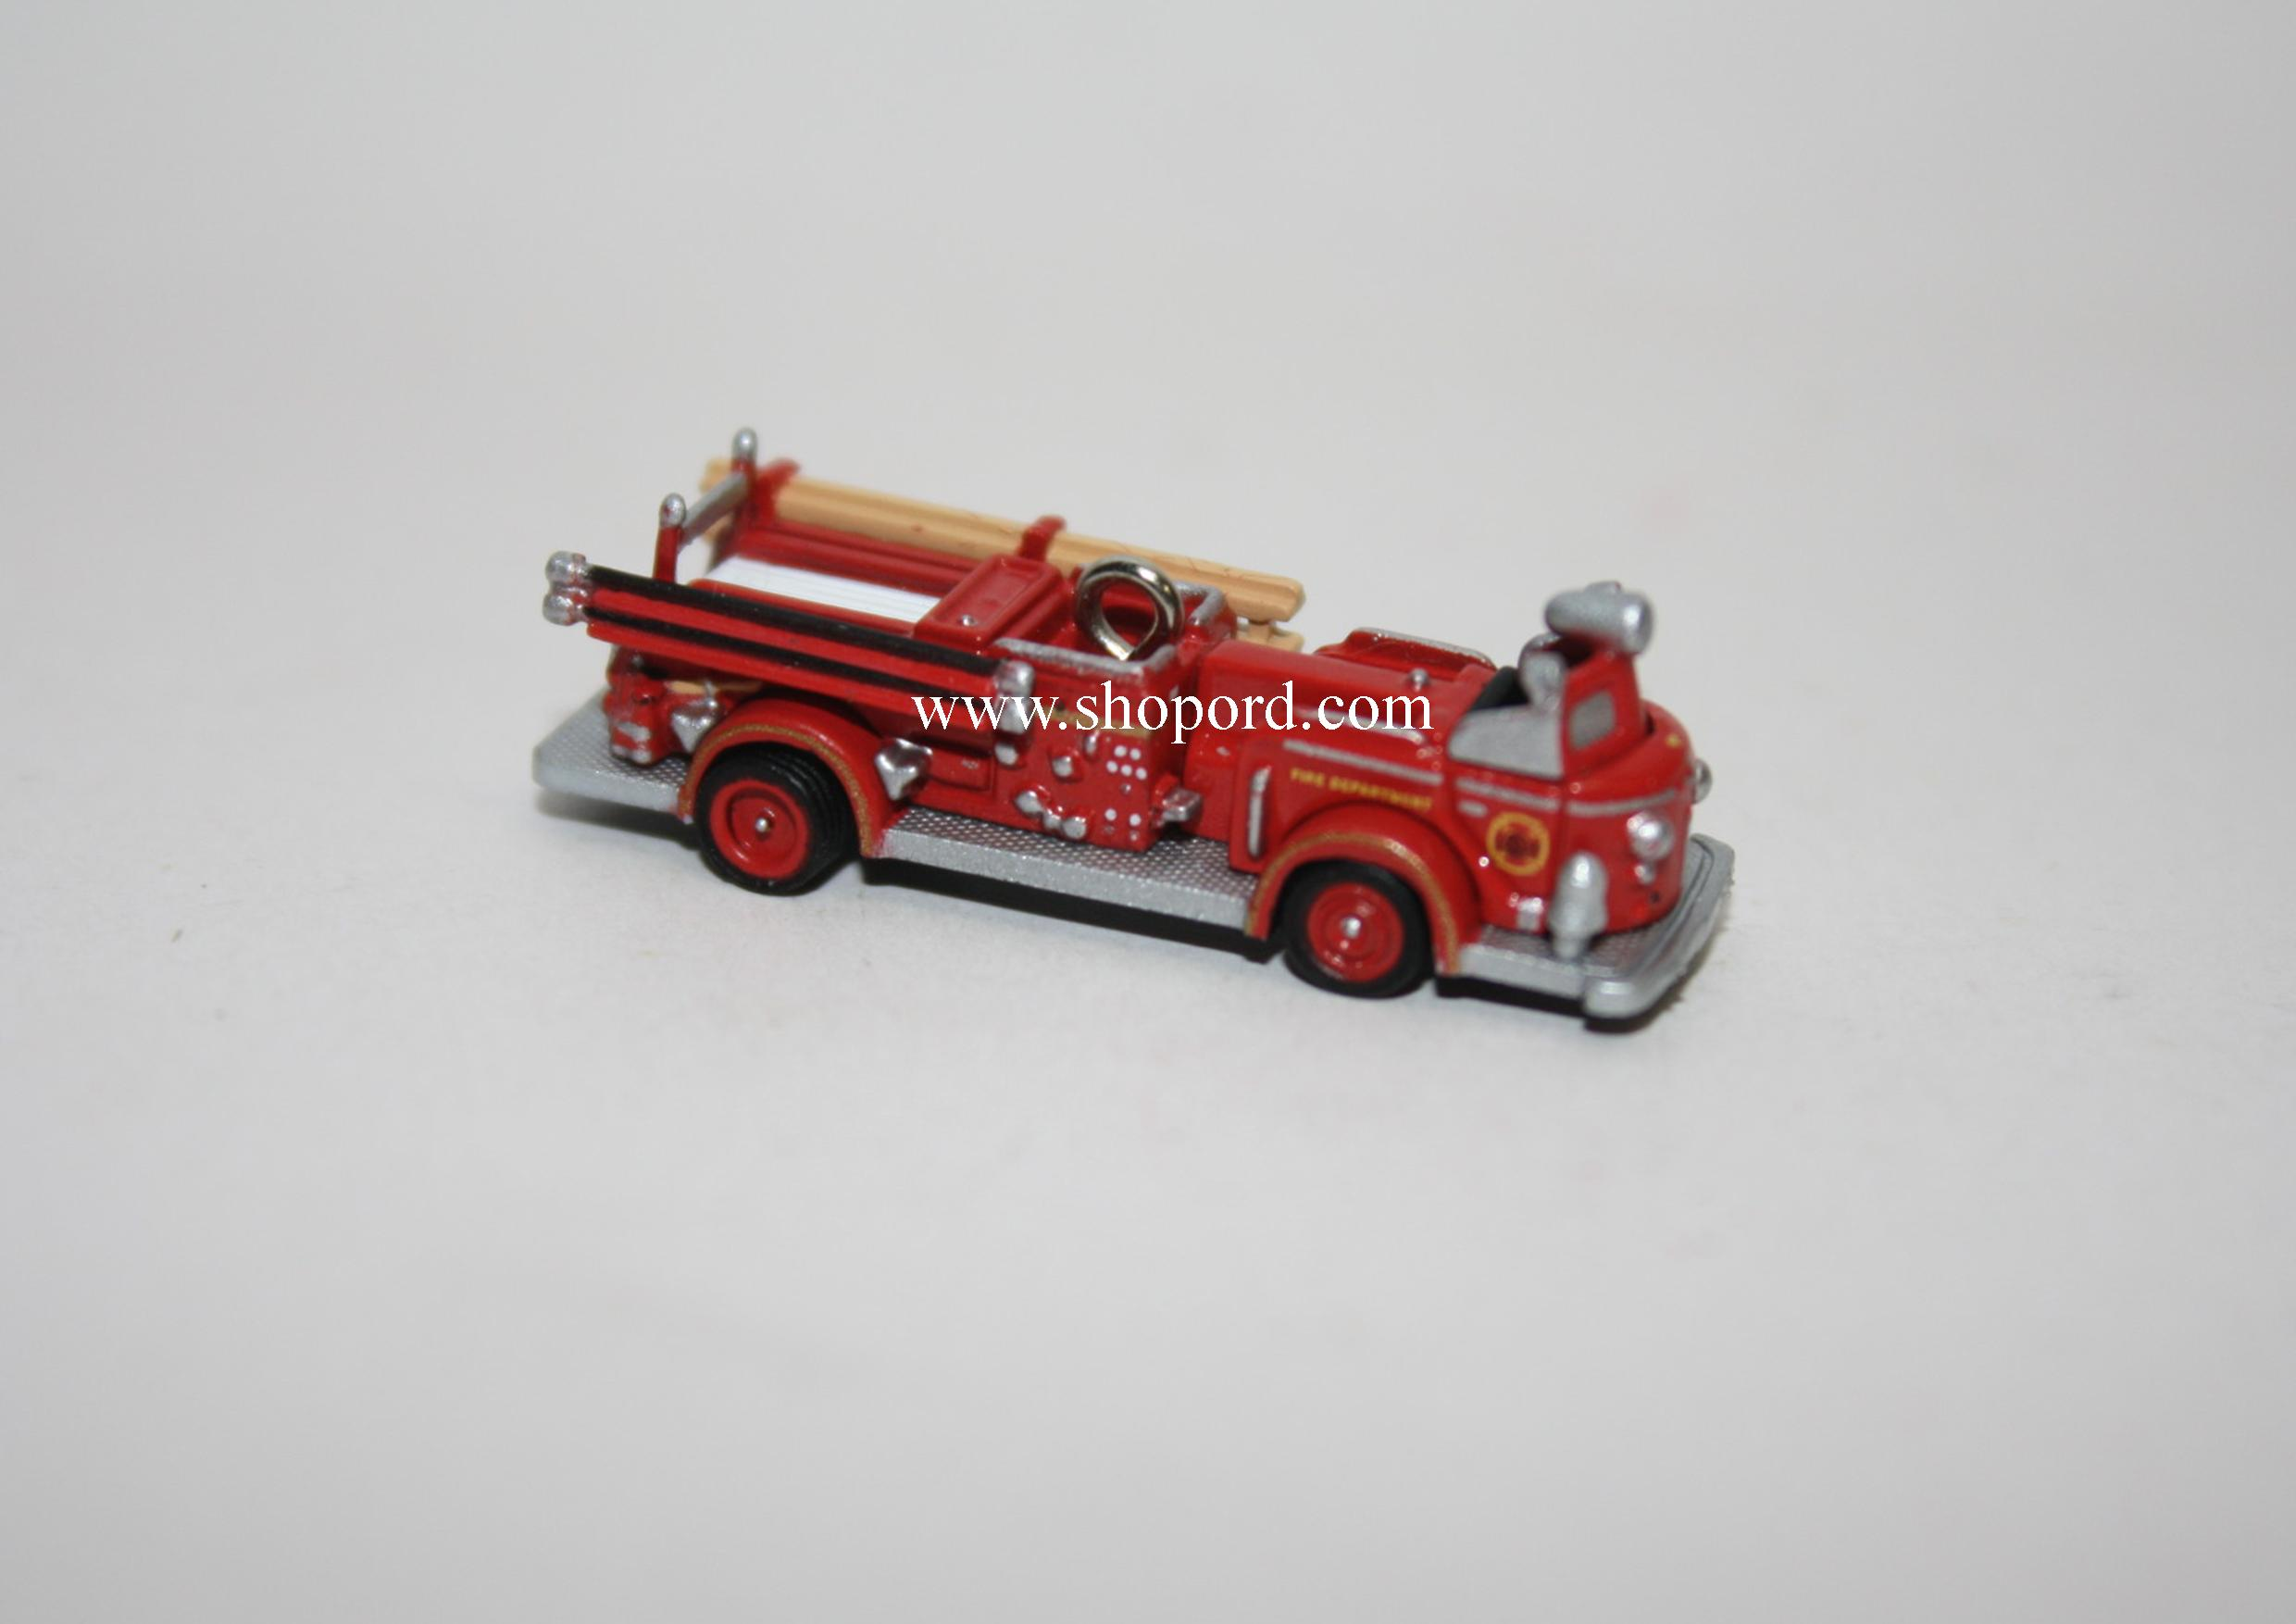 Hallmark 2005 American LaFrance 700 Series Pumper Miniature Ornament 2nd in the Miniature Fire Brigade series QXM2062